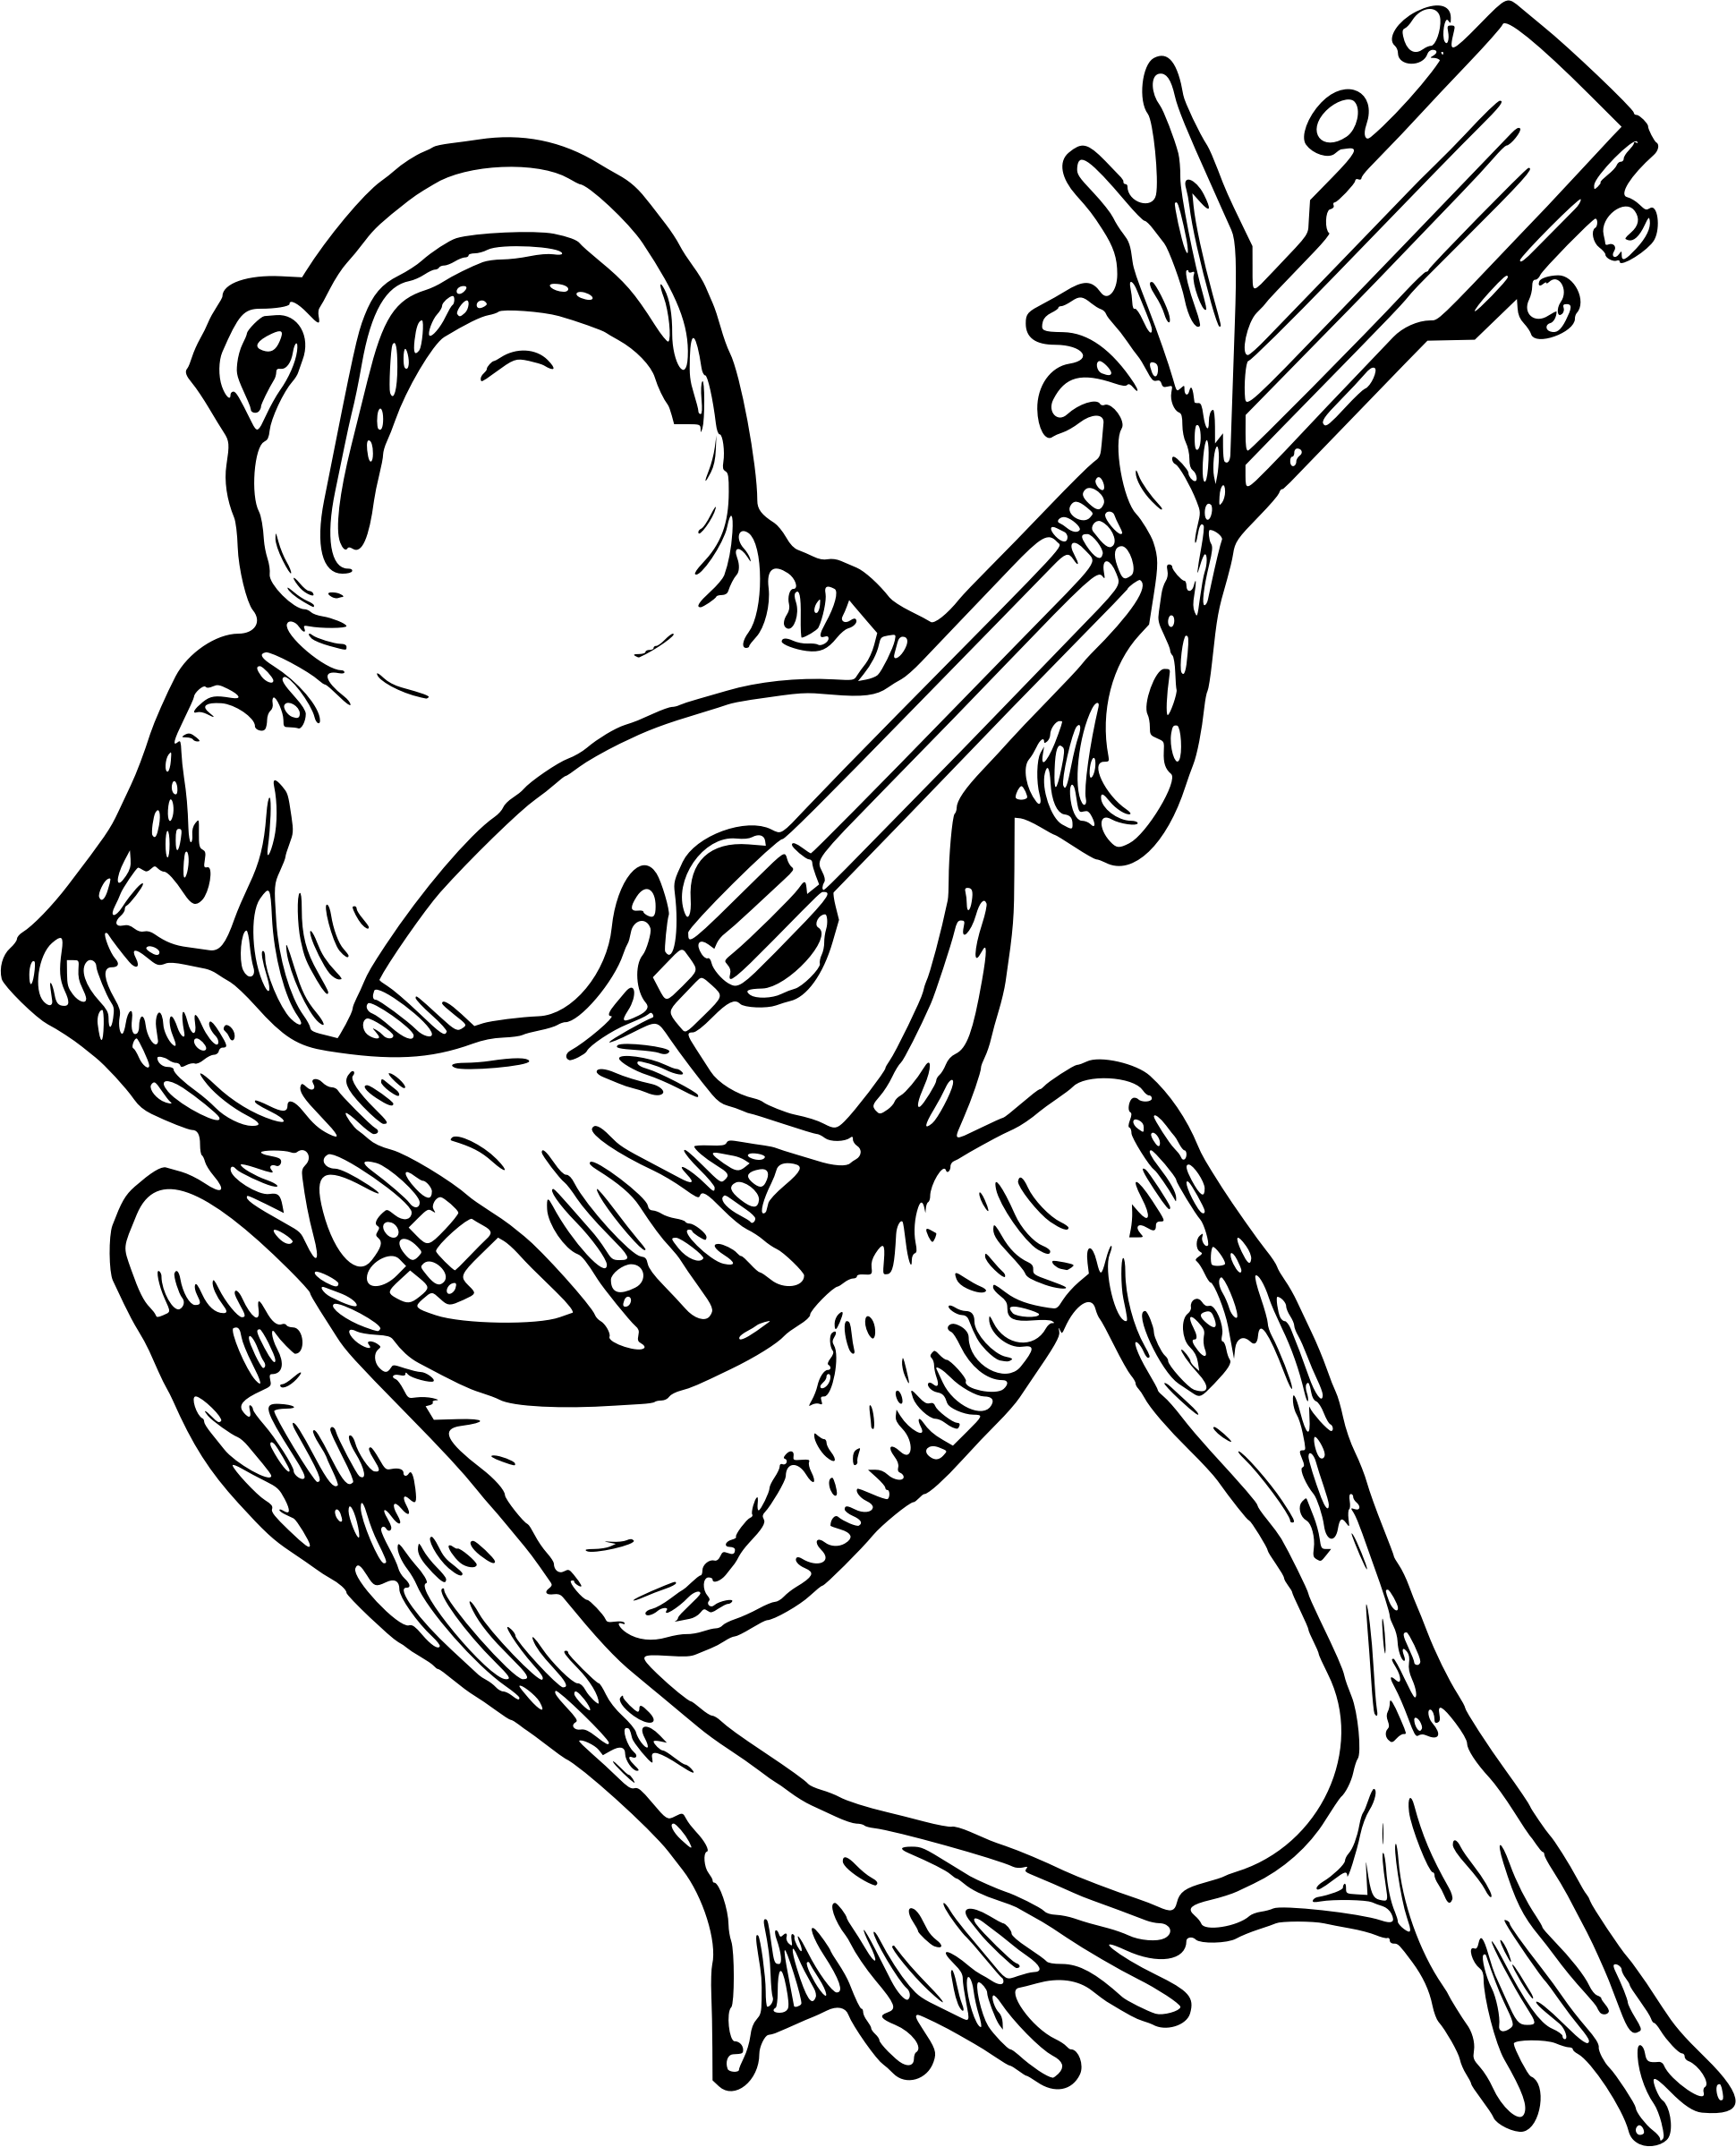 Frogs Clipart Sketch Frogs Sketch Transparent Free For